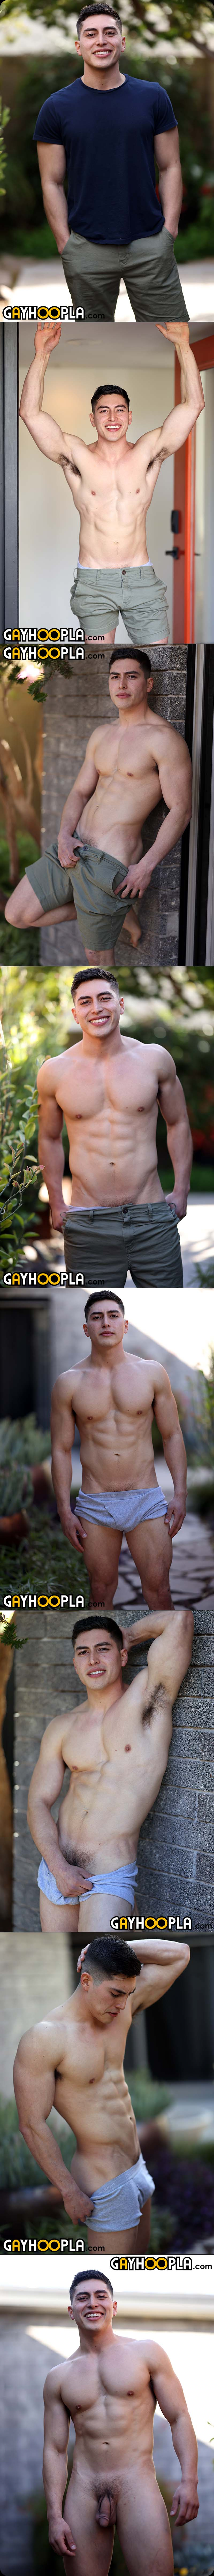 New STUD Kendrick Driver Fingers His Ass and Makes A Splash! at GayHoopla